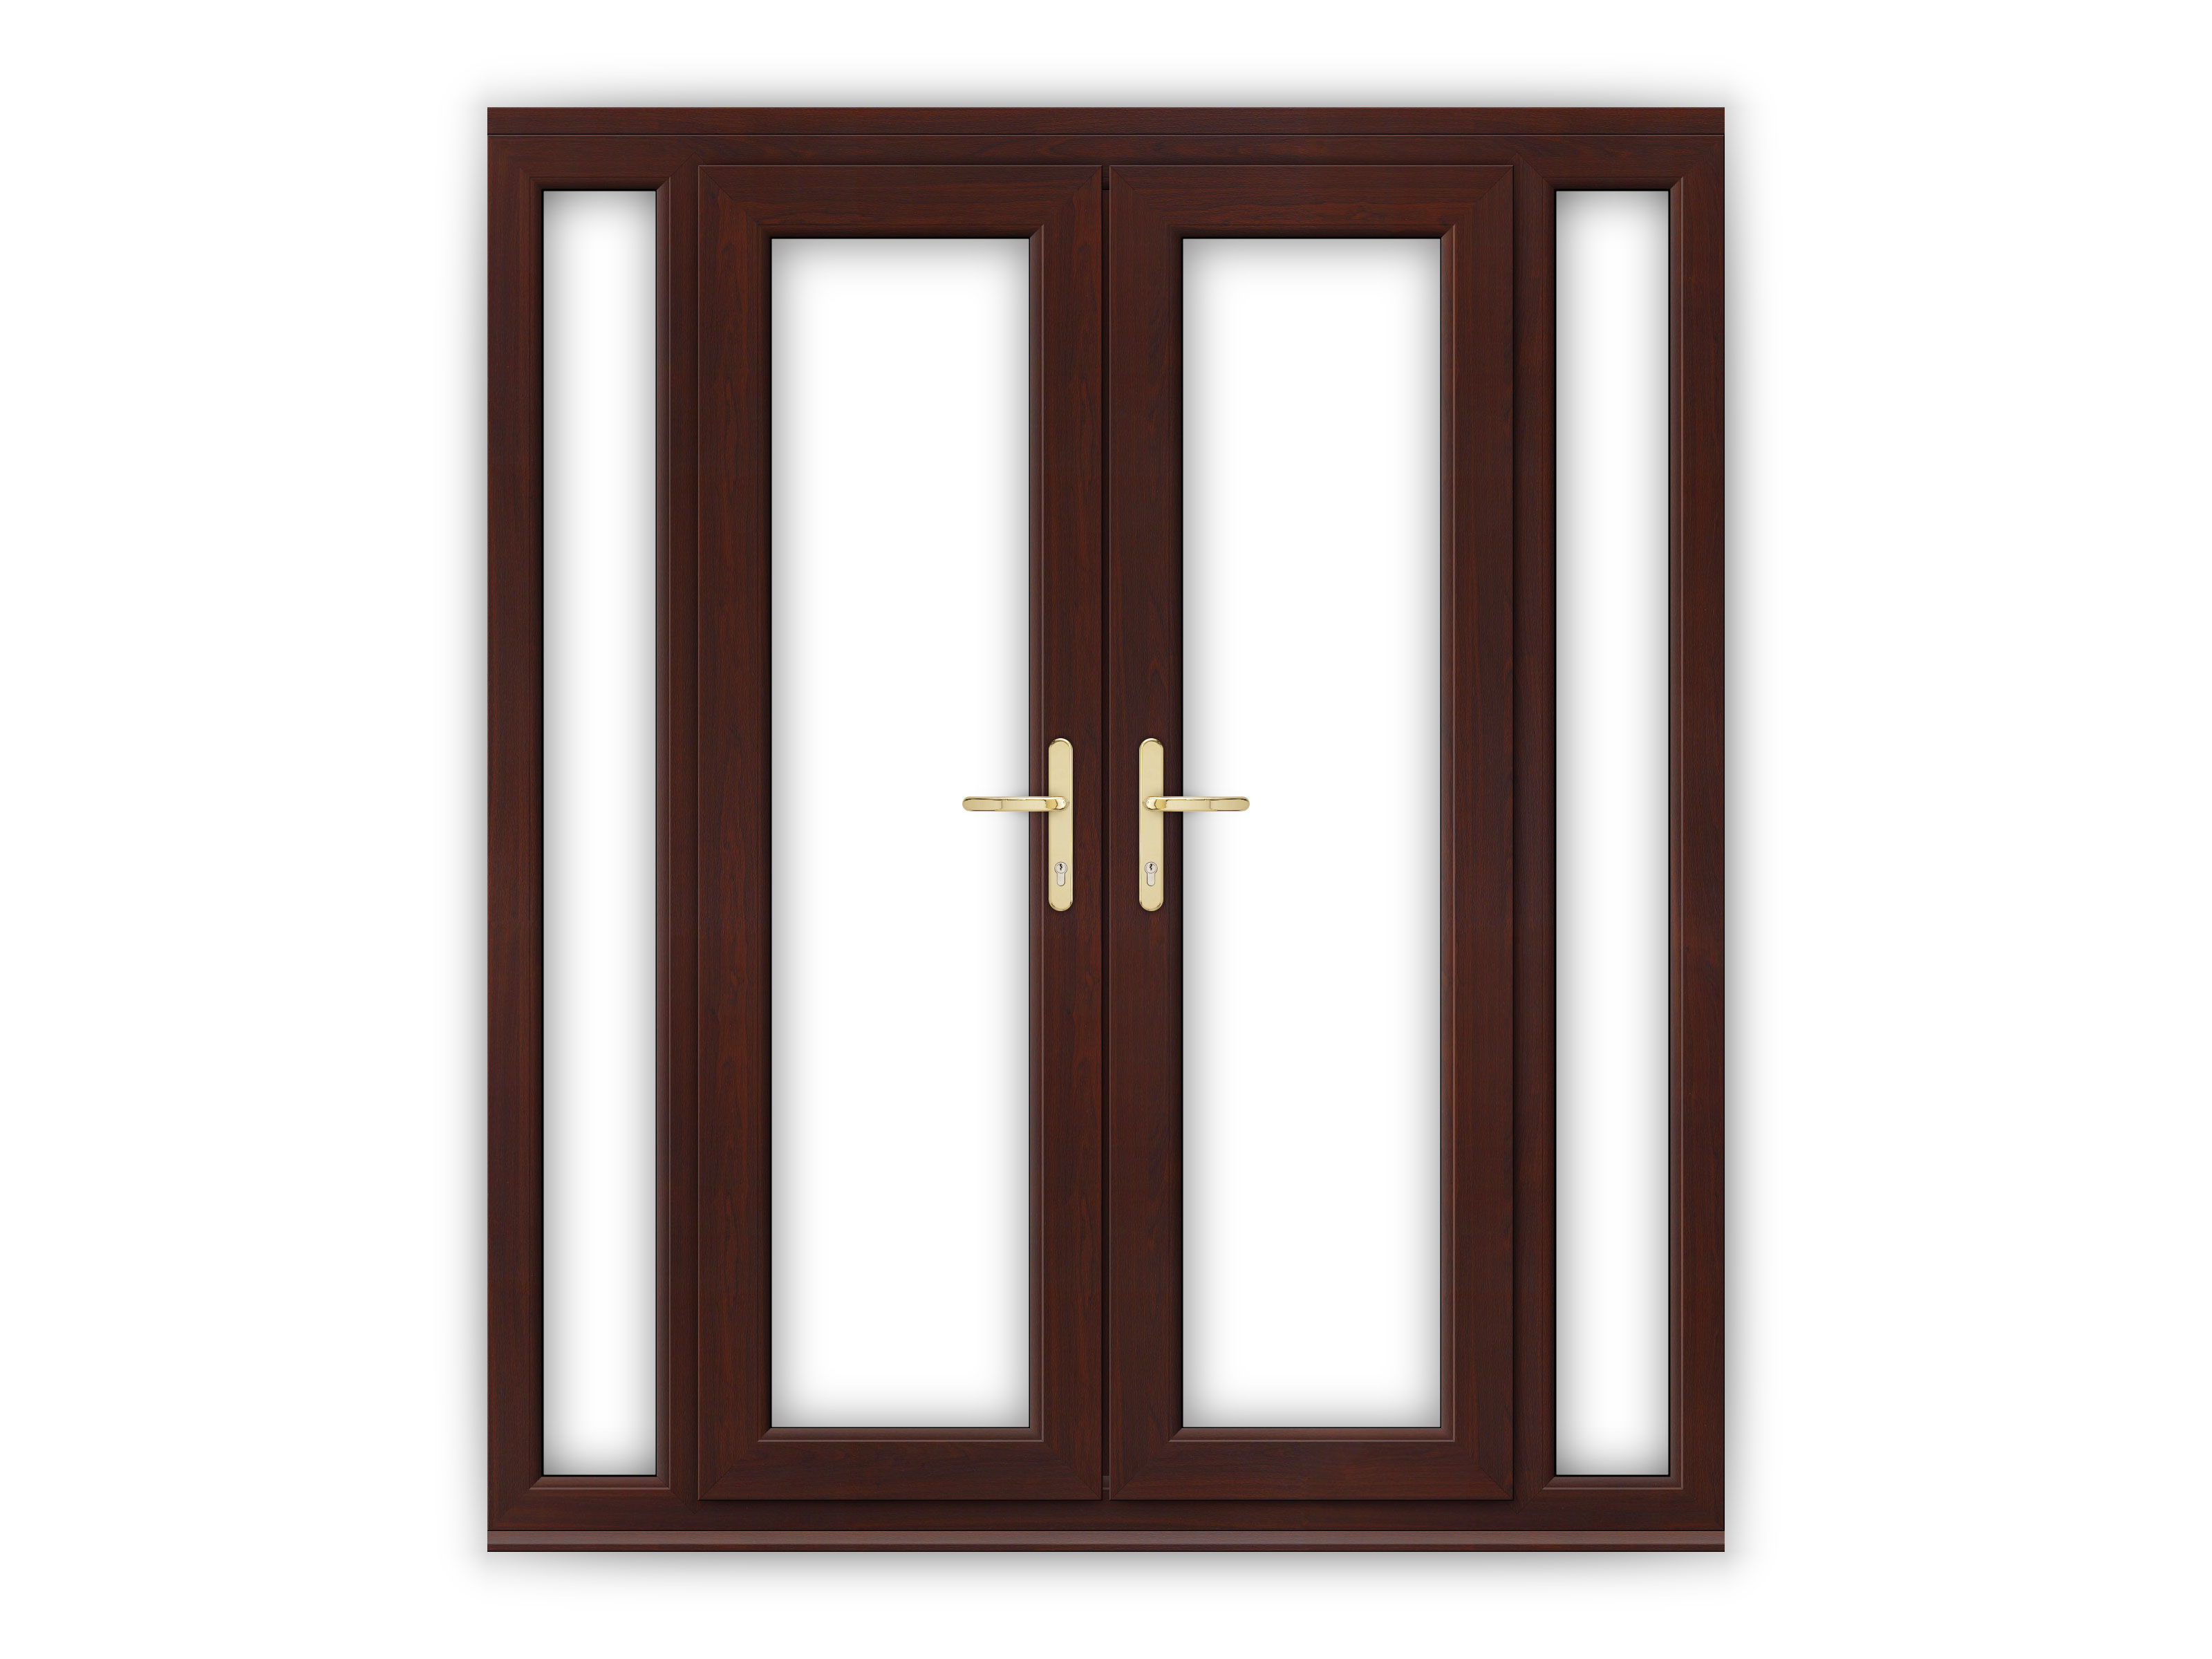 4ft Rosewood uPVC French Doors with Narrow Side Panels  sc 1 st  Flying Doors & 4ft Rosewood uPVC French Doors with Narrow Side Panels | Flying Doors